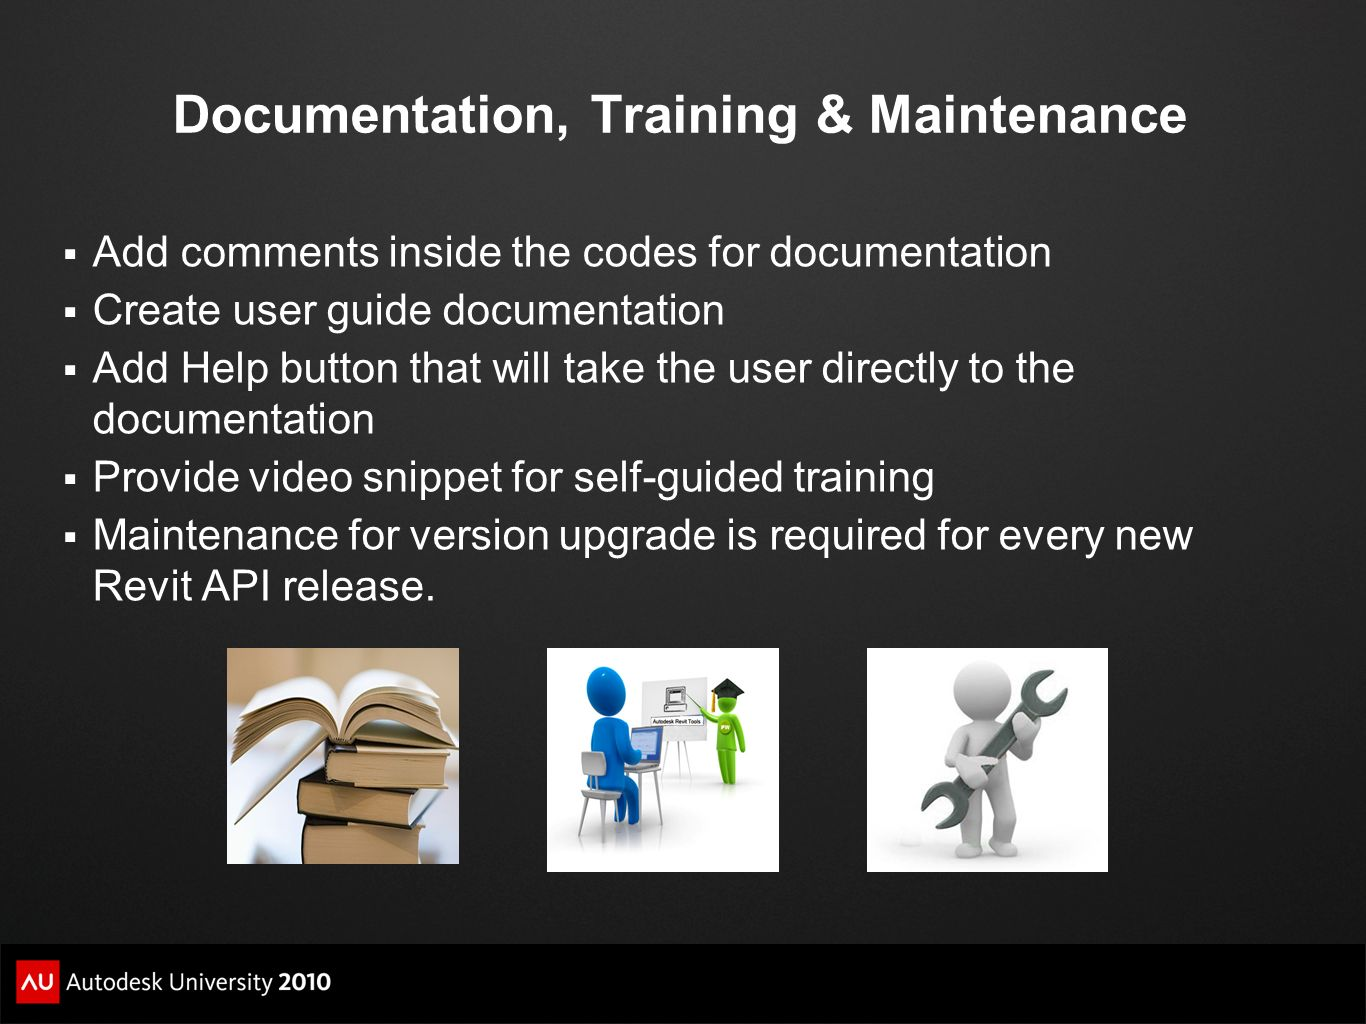 Documentation, Training & Maintenance